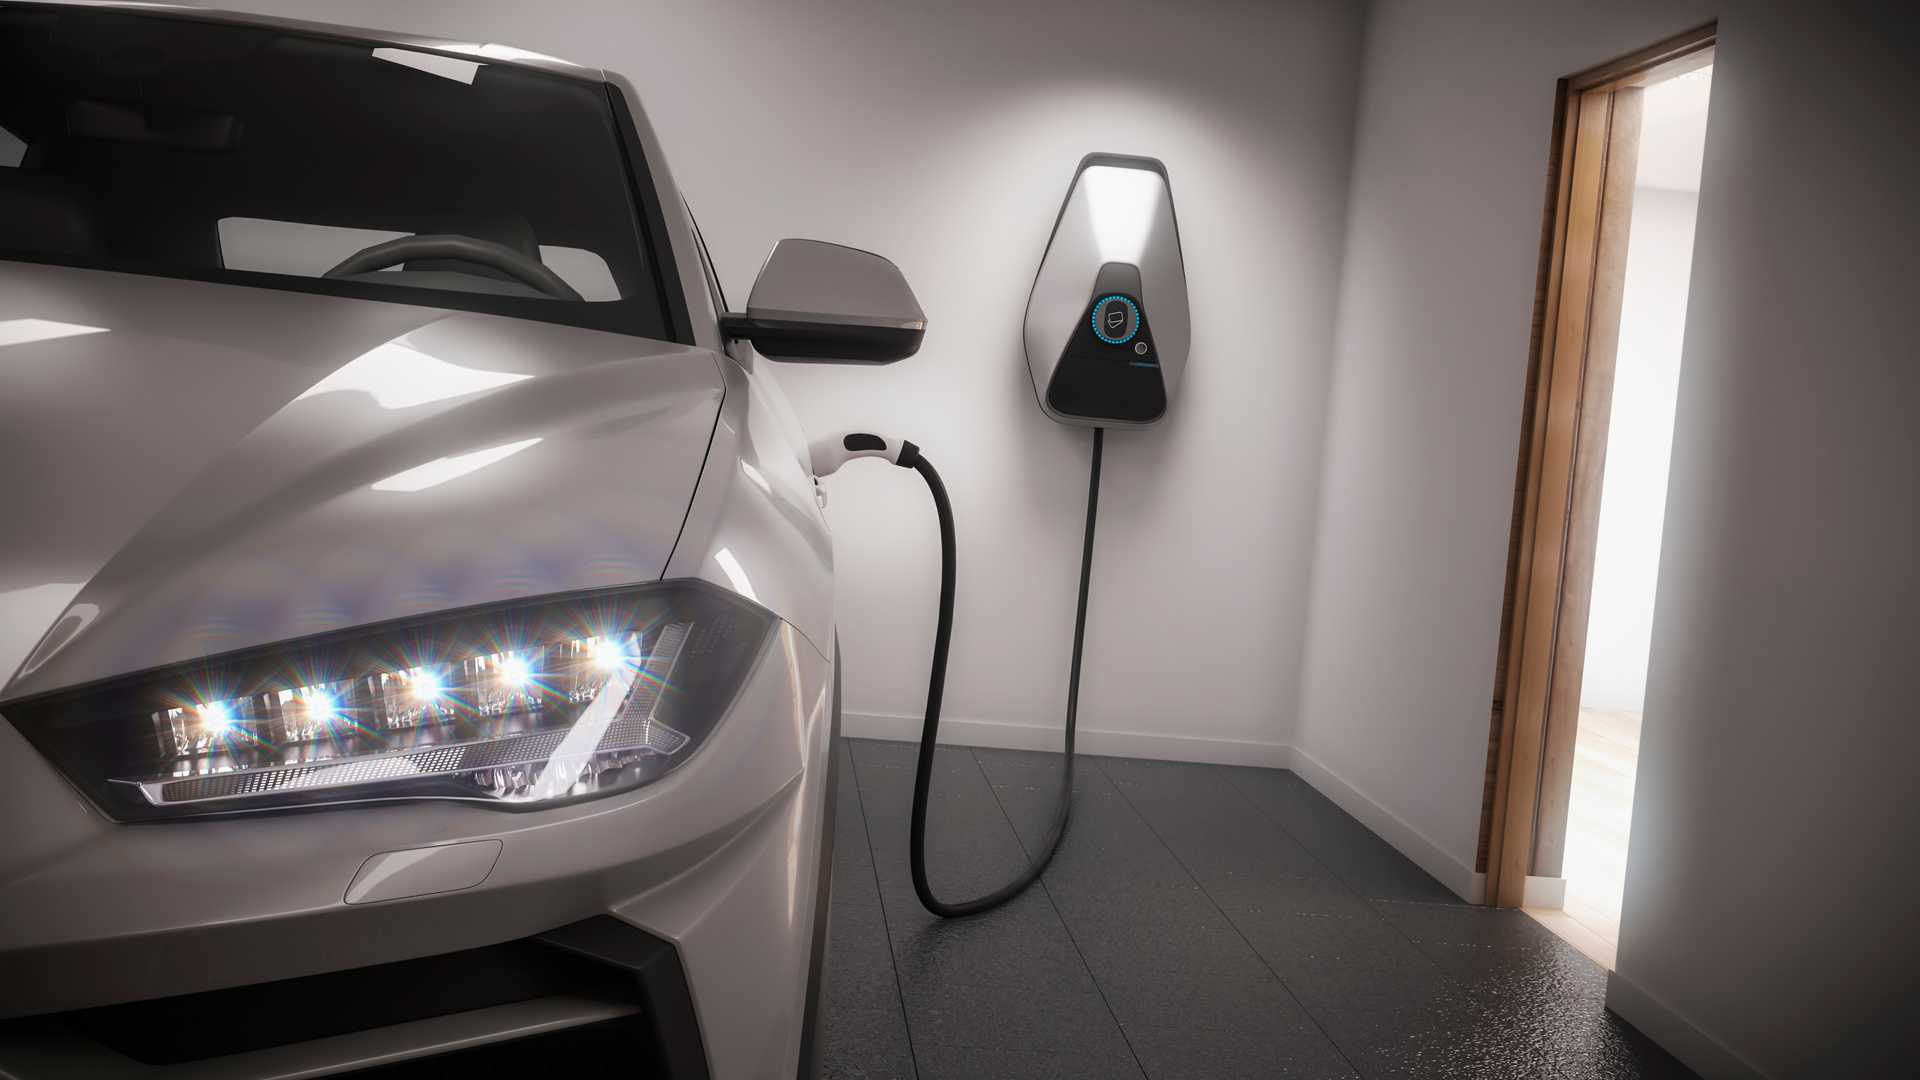 Charging electric car suv in garage illustration